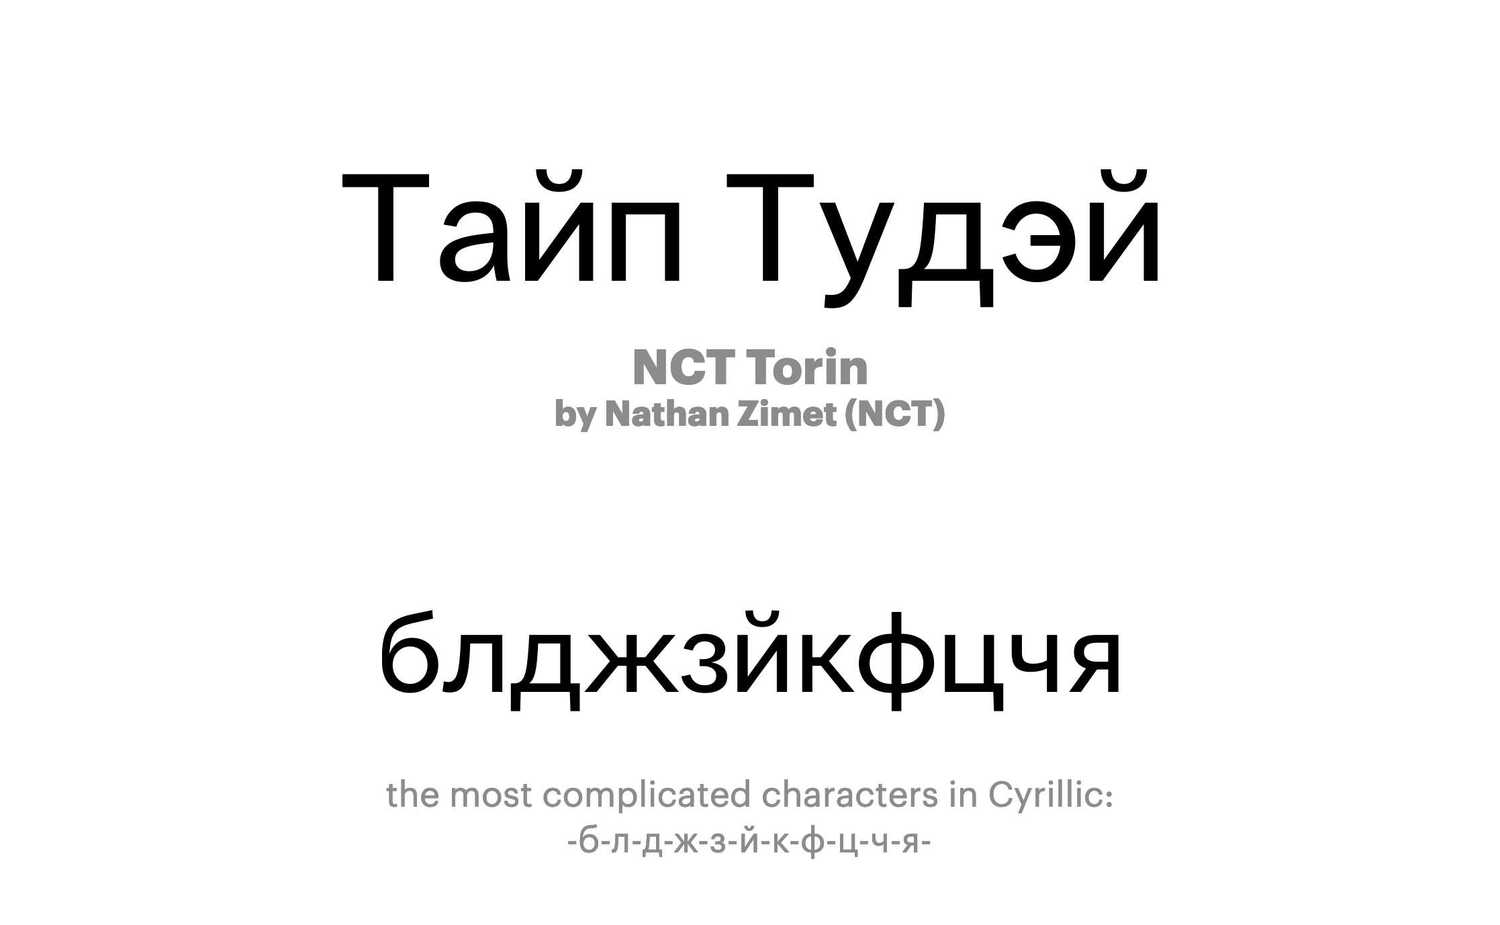 NCT-Torin-by-Nathan-Zimet-(NCT)